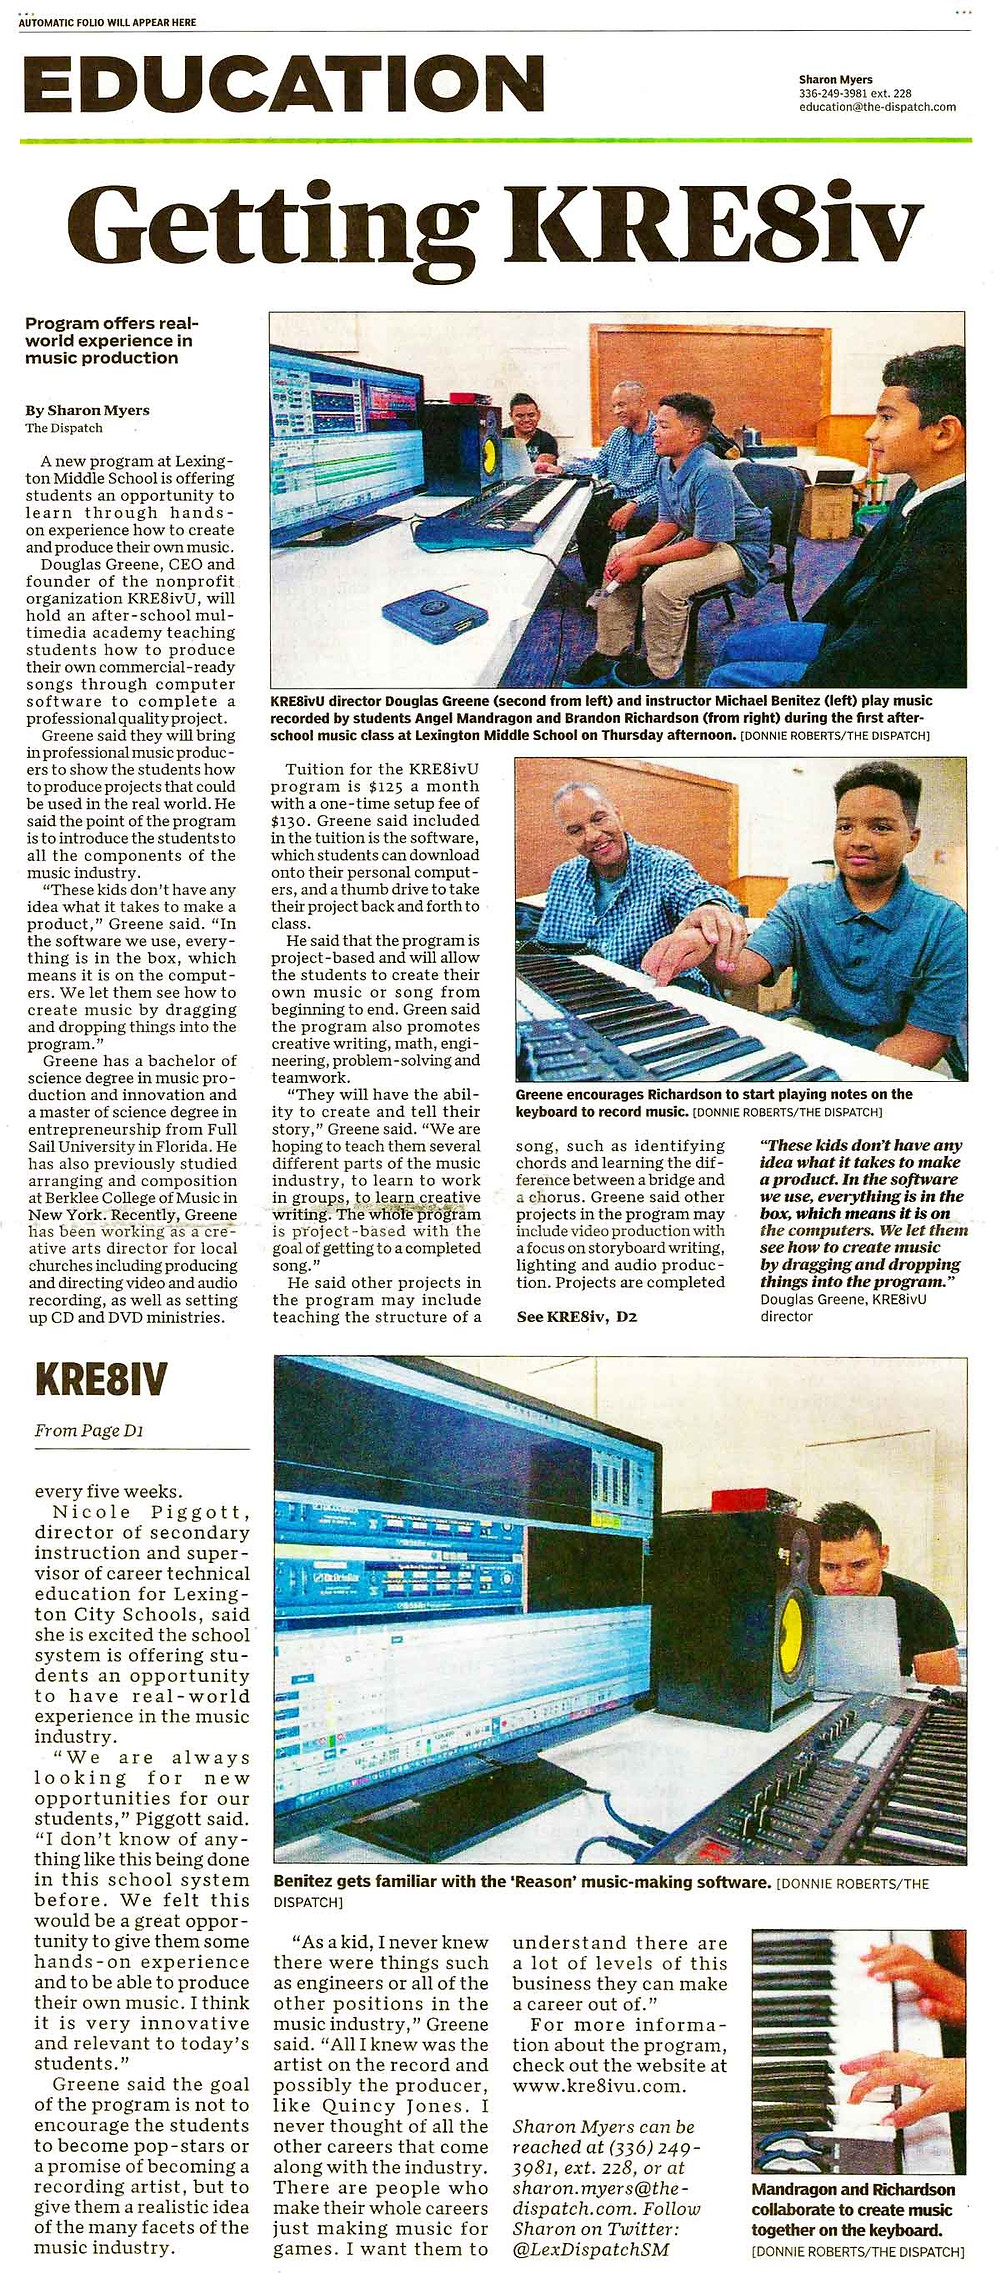 Getting KRE8iv - click to see full article.